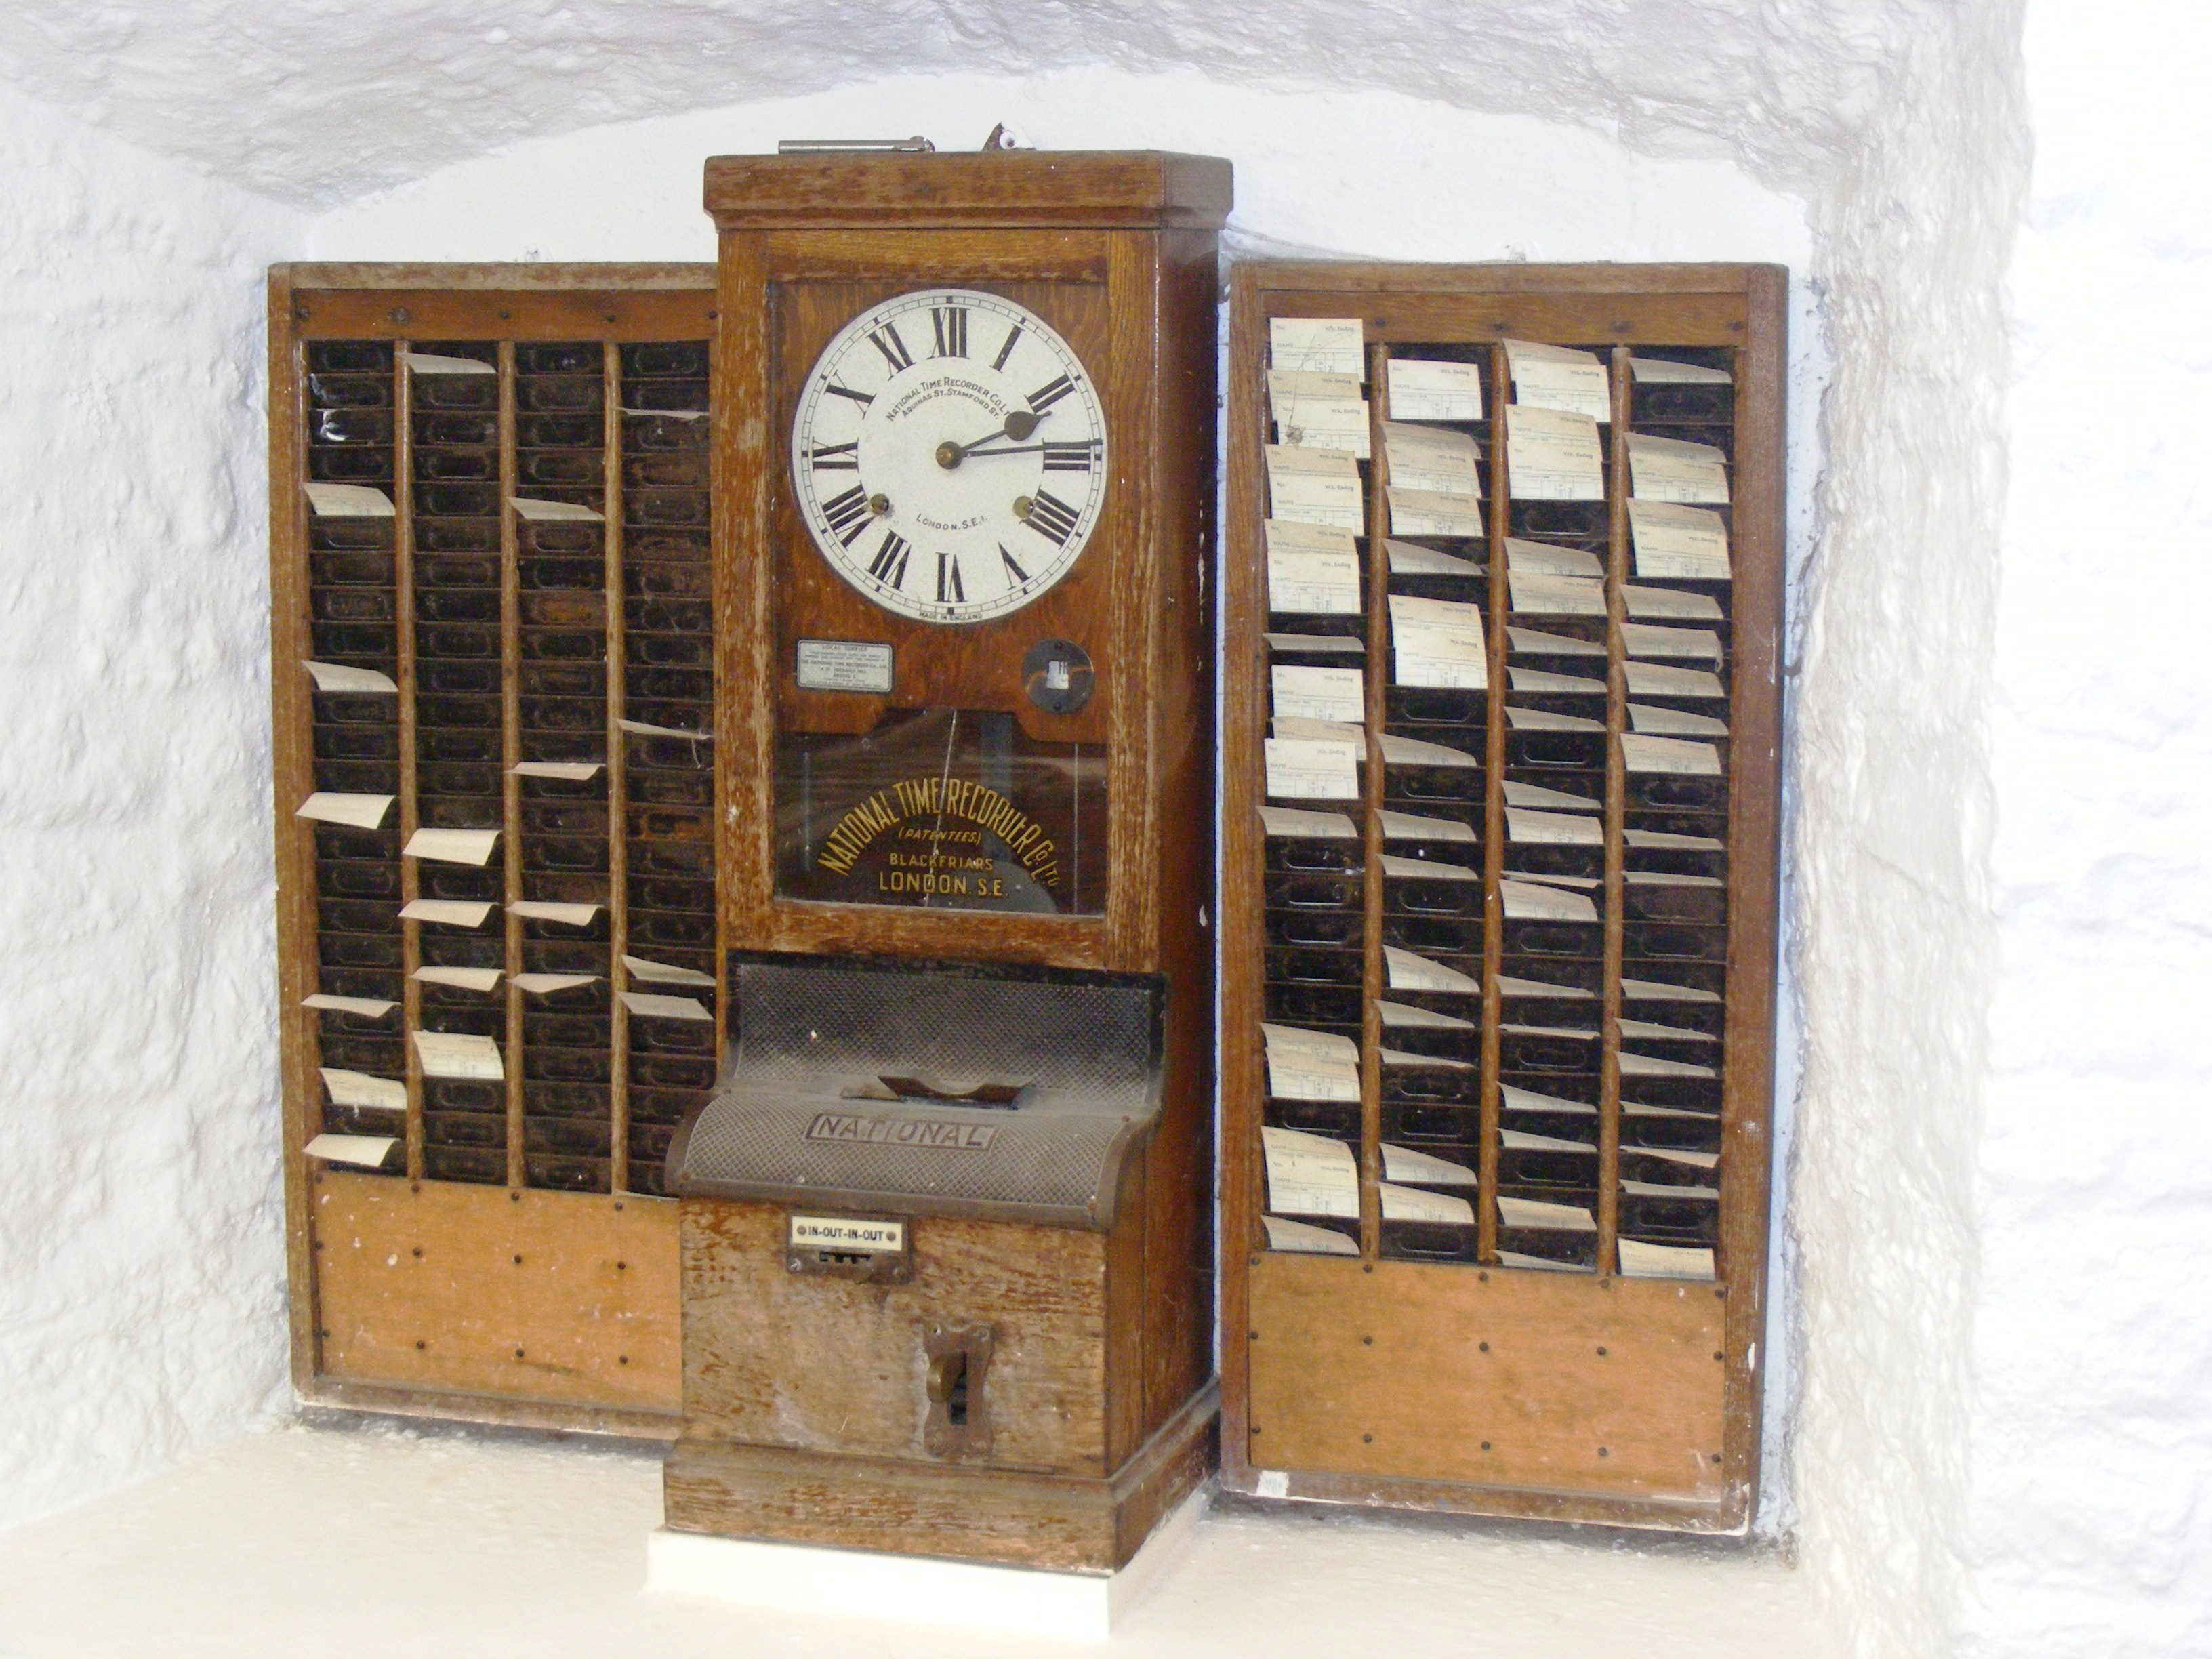 image credit: Wikipedia. Time clock at Wookey Hole Cave Musuem.